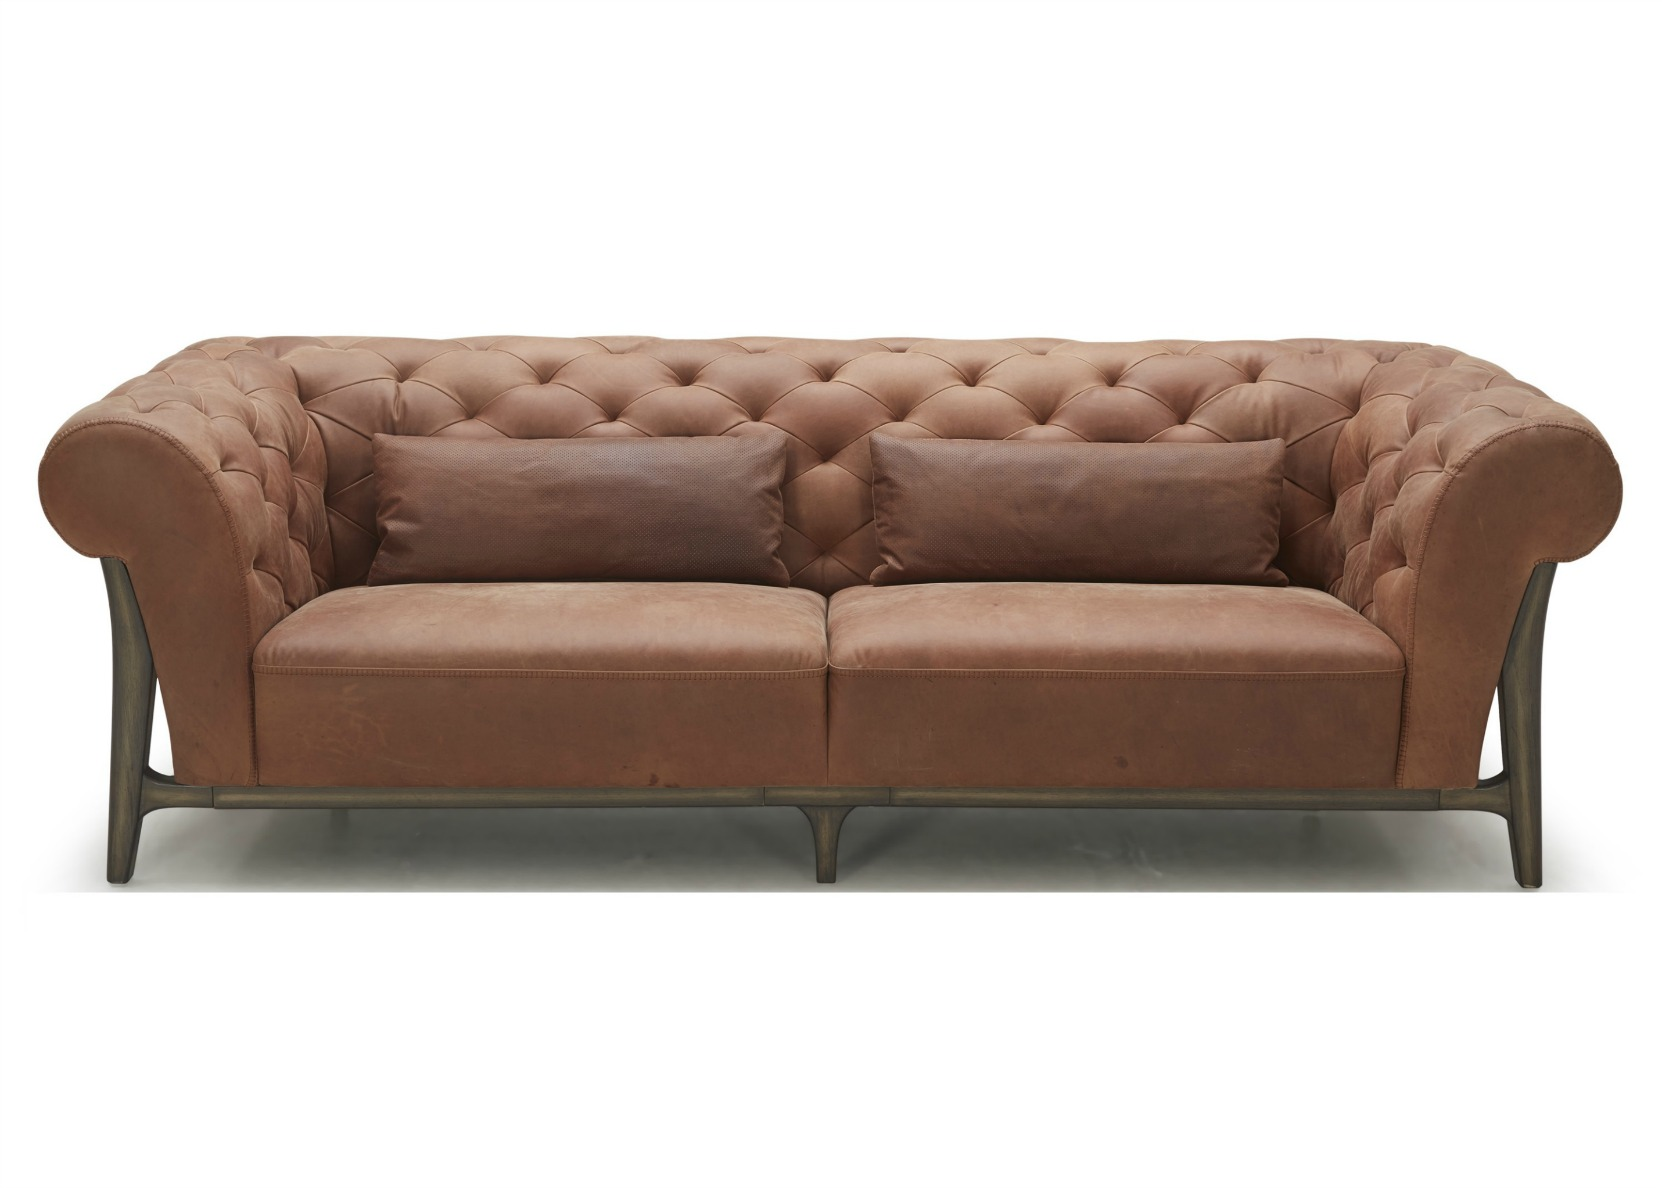 Chesterfield Sofa In Leather Wood Not Just Brown ~ Chesterfield Brown Sofa